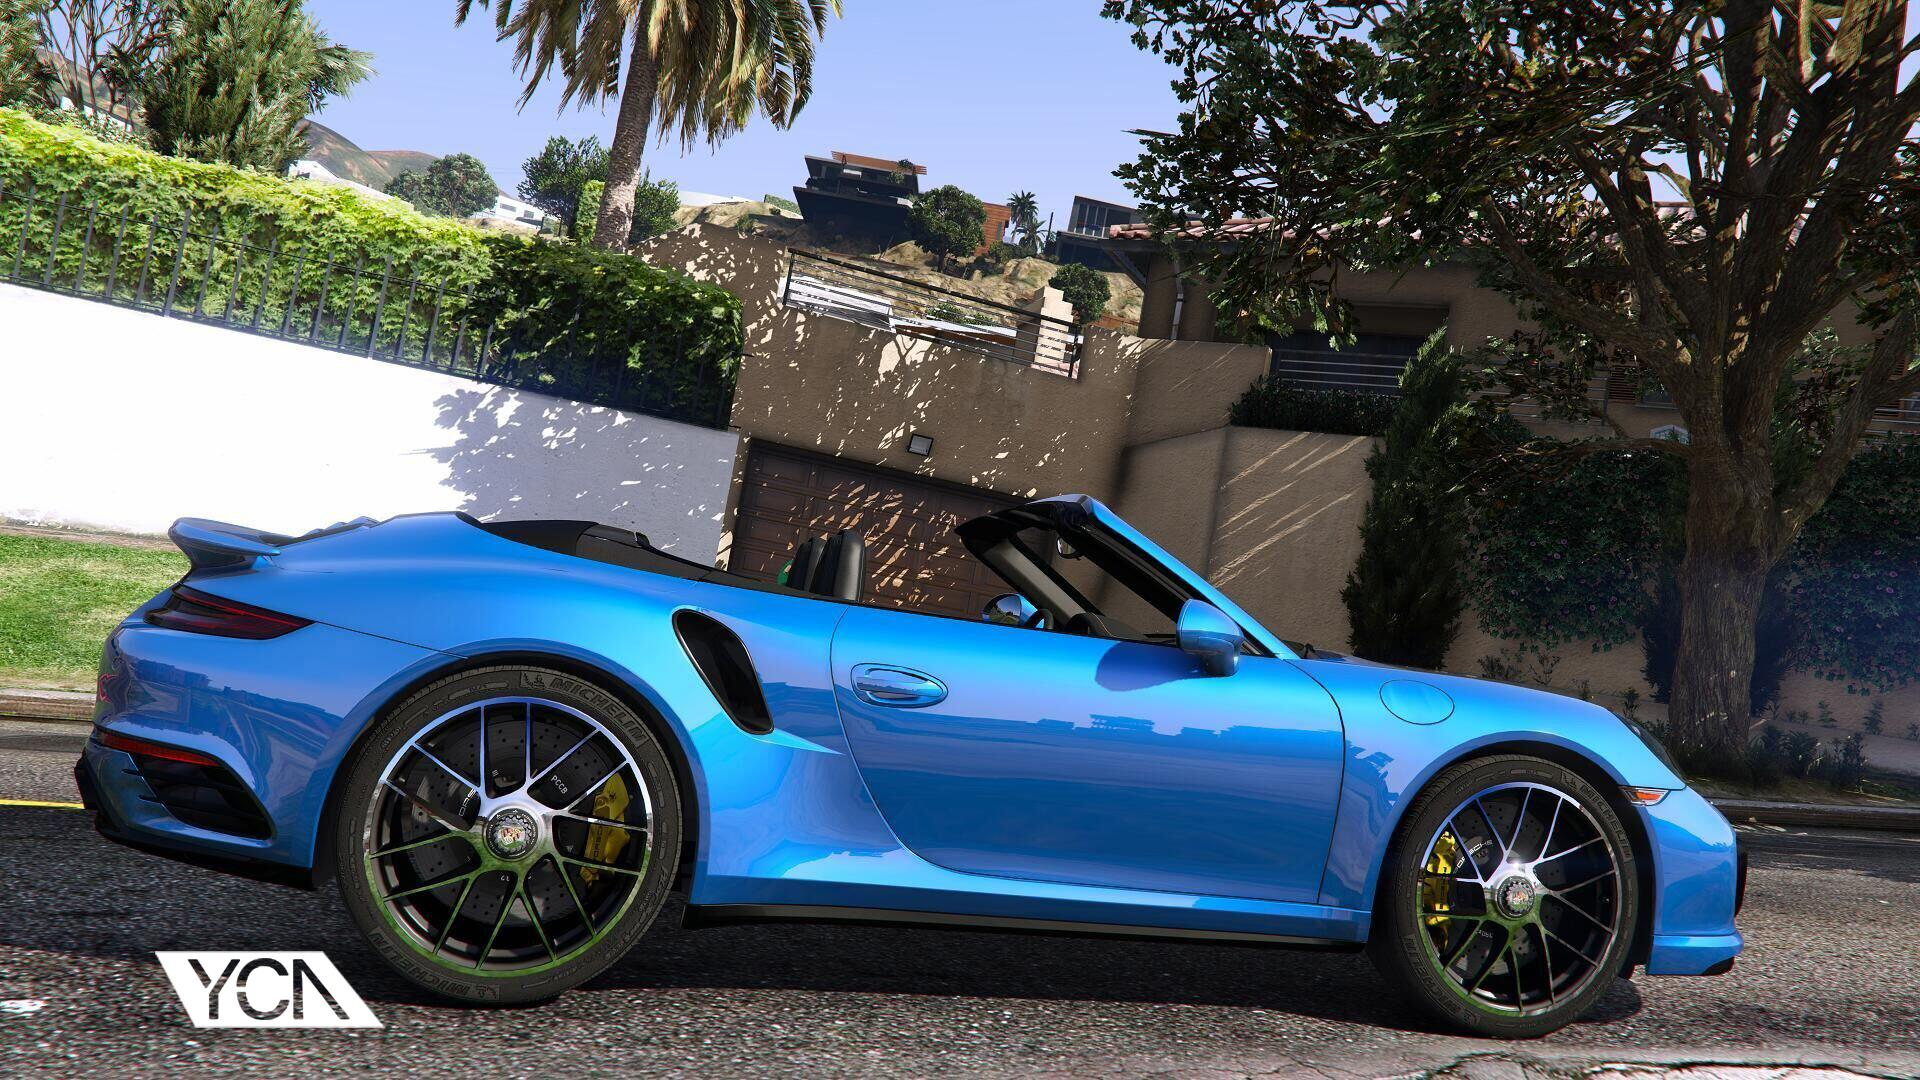 2016 porsche 911 turbo s cabriolet 991 2 add on wipers gta5. Black Bedroom Furniture Sets. Home Design Ideas